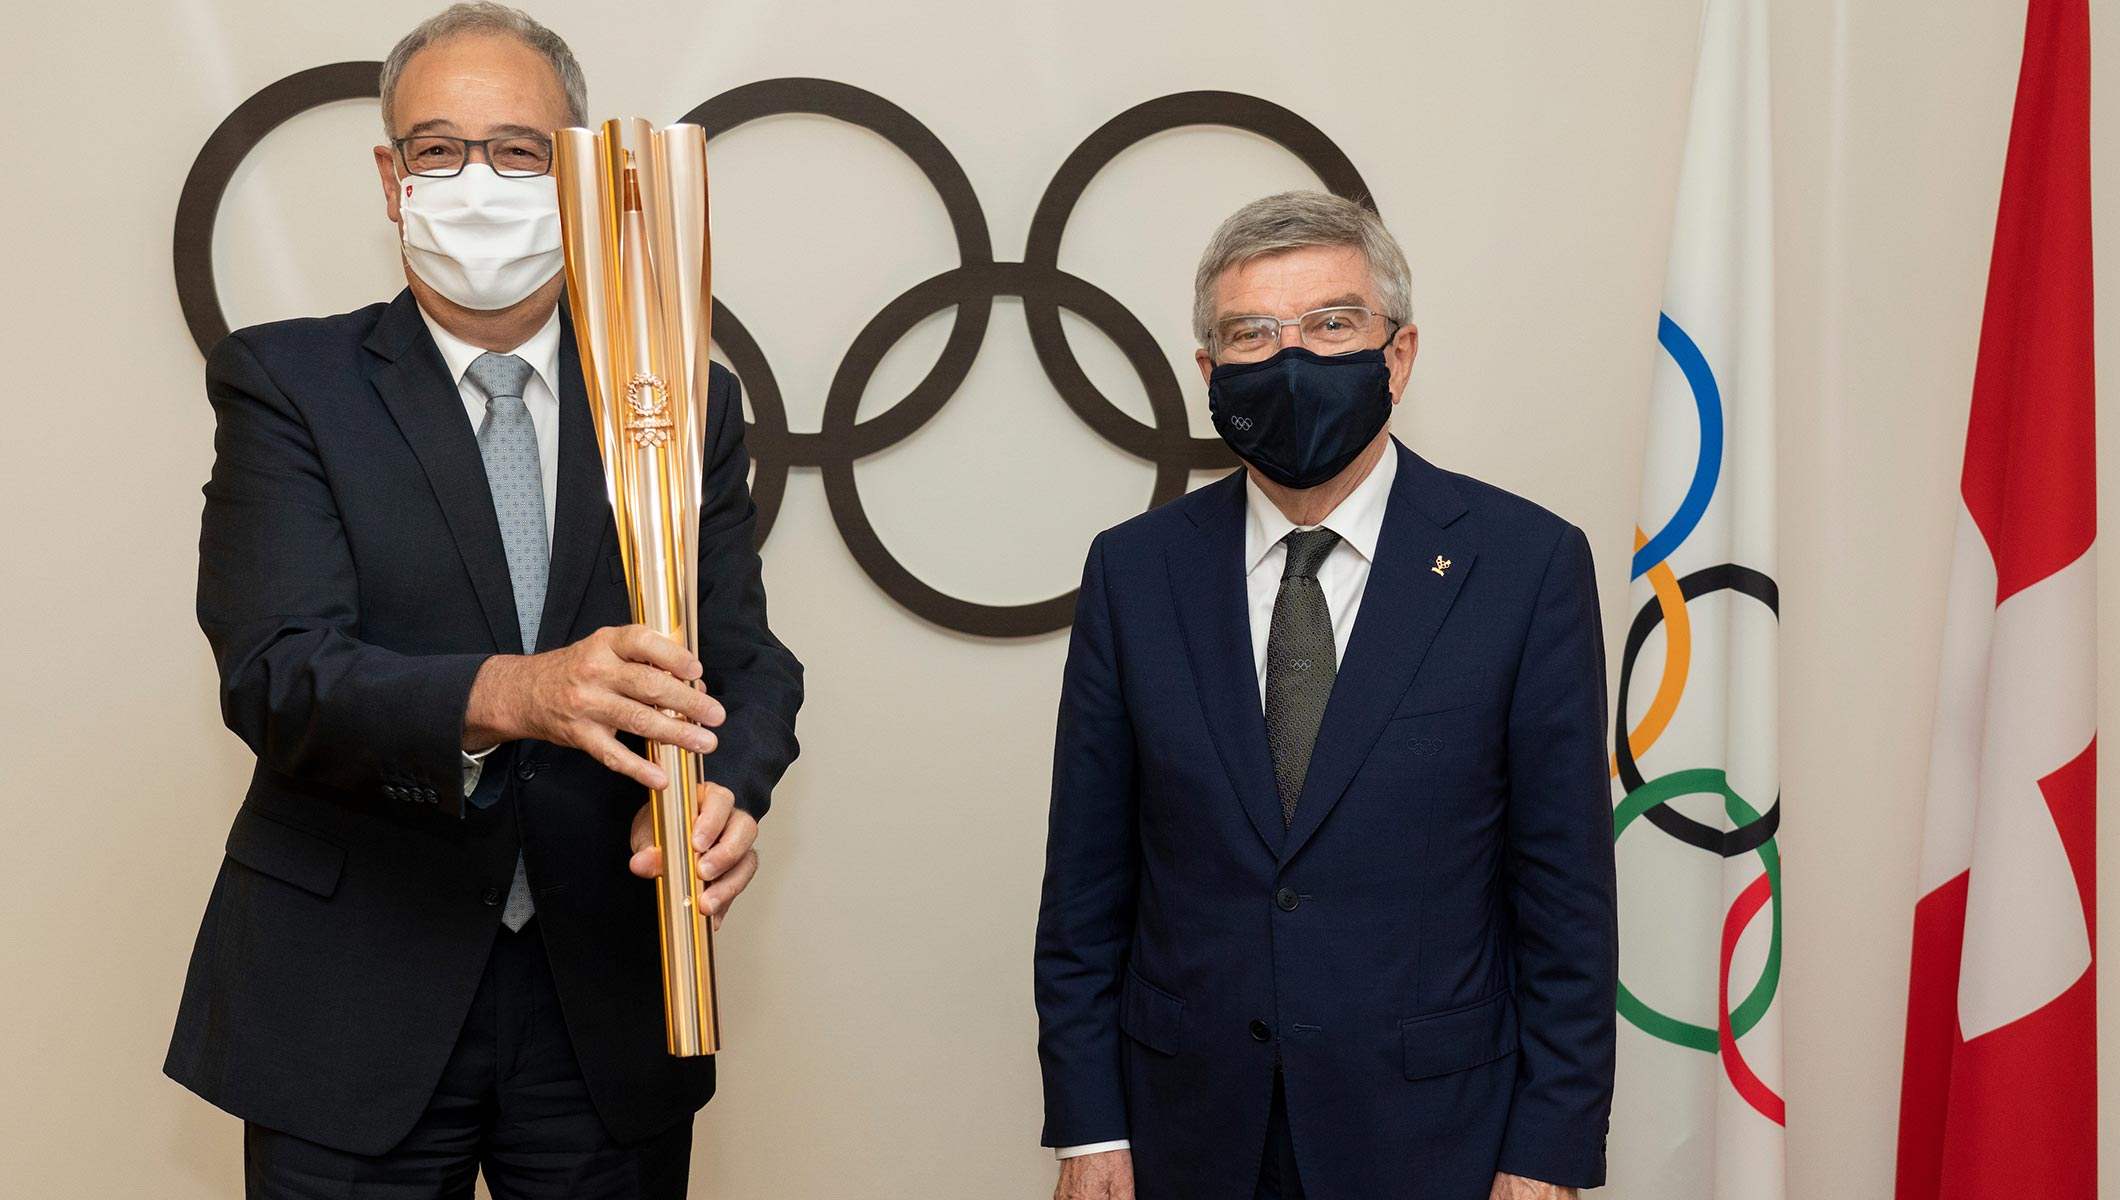 IOC President Thomas Bach meets President of the Swiss Confederation Guy Parmelin